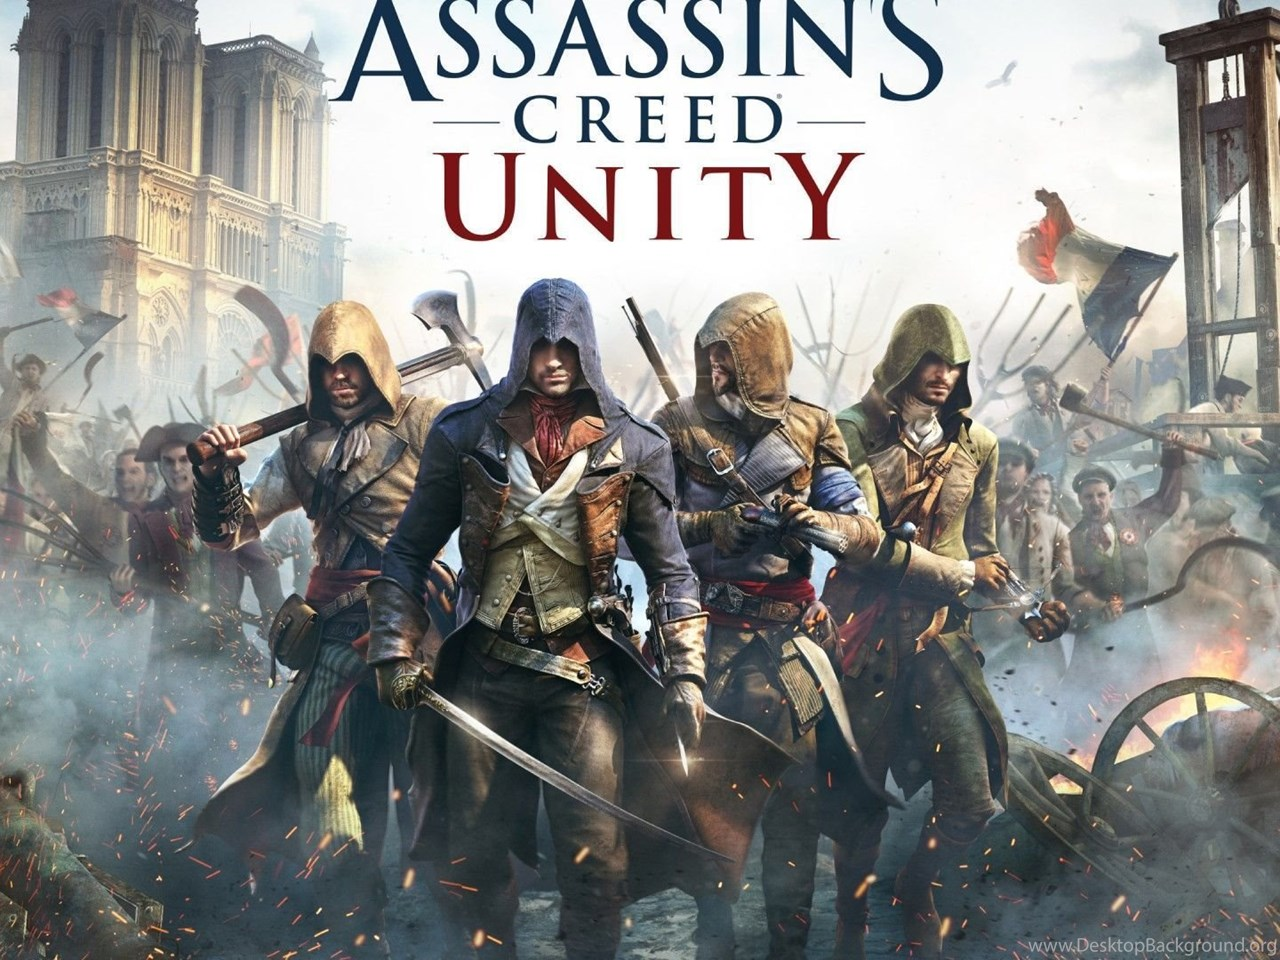 Assassin S Creed Unity Wallpapers Desktop Background Images, Photos, Reviews